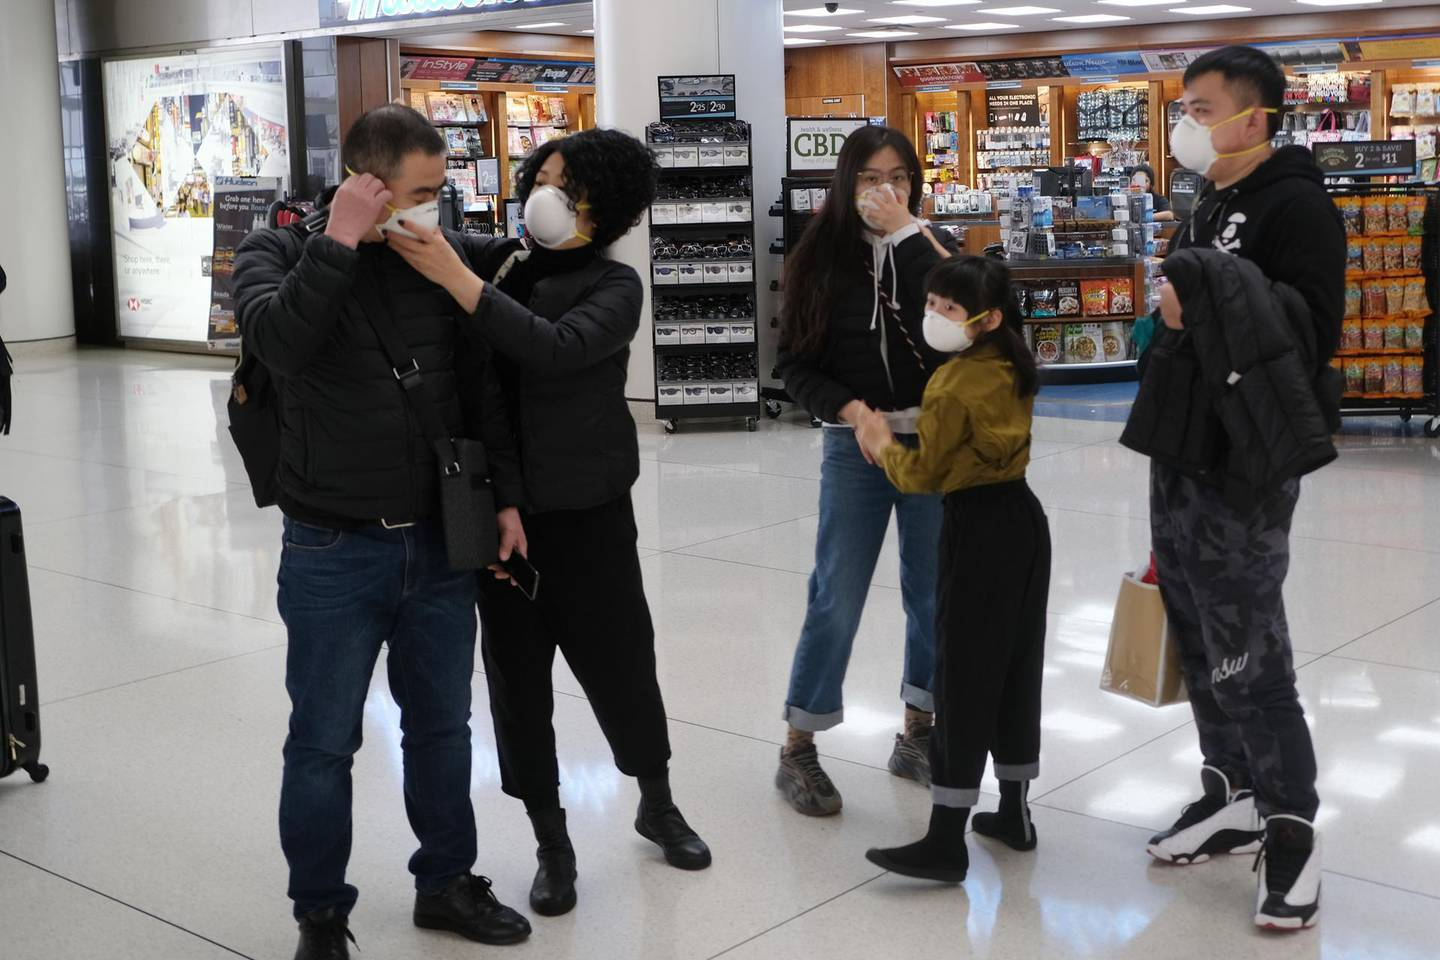 NEW YORK, NEW YORK - JANUARY 31: At the terminal that serves planes bound for China, people wear medical masks at John F. Kennedy Airport (JFK) out of concern over the Coronavirus on January 31, 2020 in New York City. The virus, which has so far killed over 200 people and infected an estimated 9,900 people, is believed to have started in the Chinese city of Wuhan.   Spencer Platt/Getty Images/AFP == FOR NEWSPAPERS, INTERNET, TELCOS & TELEVISION USE ONLY ==